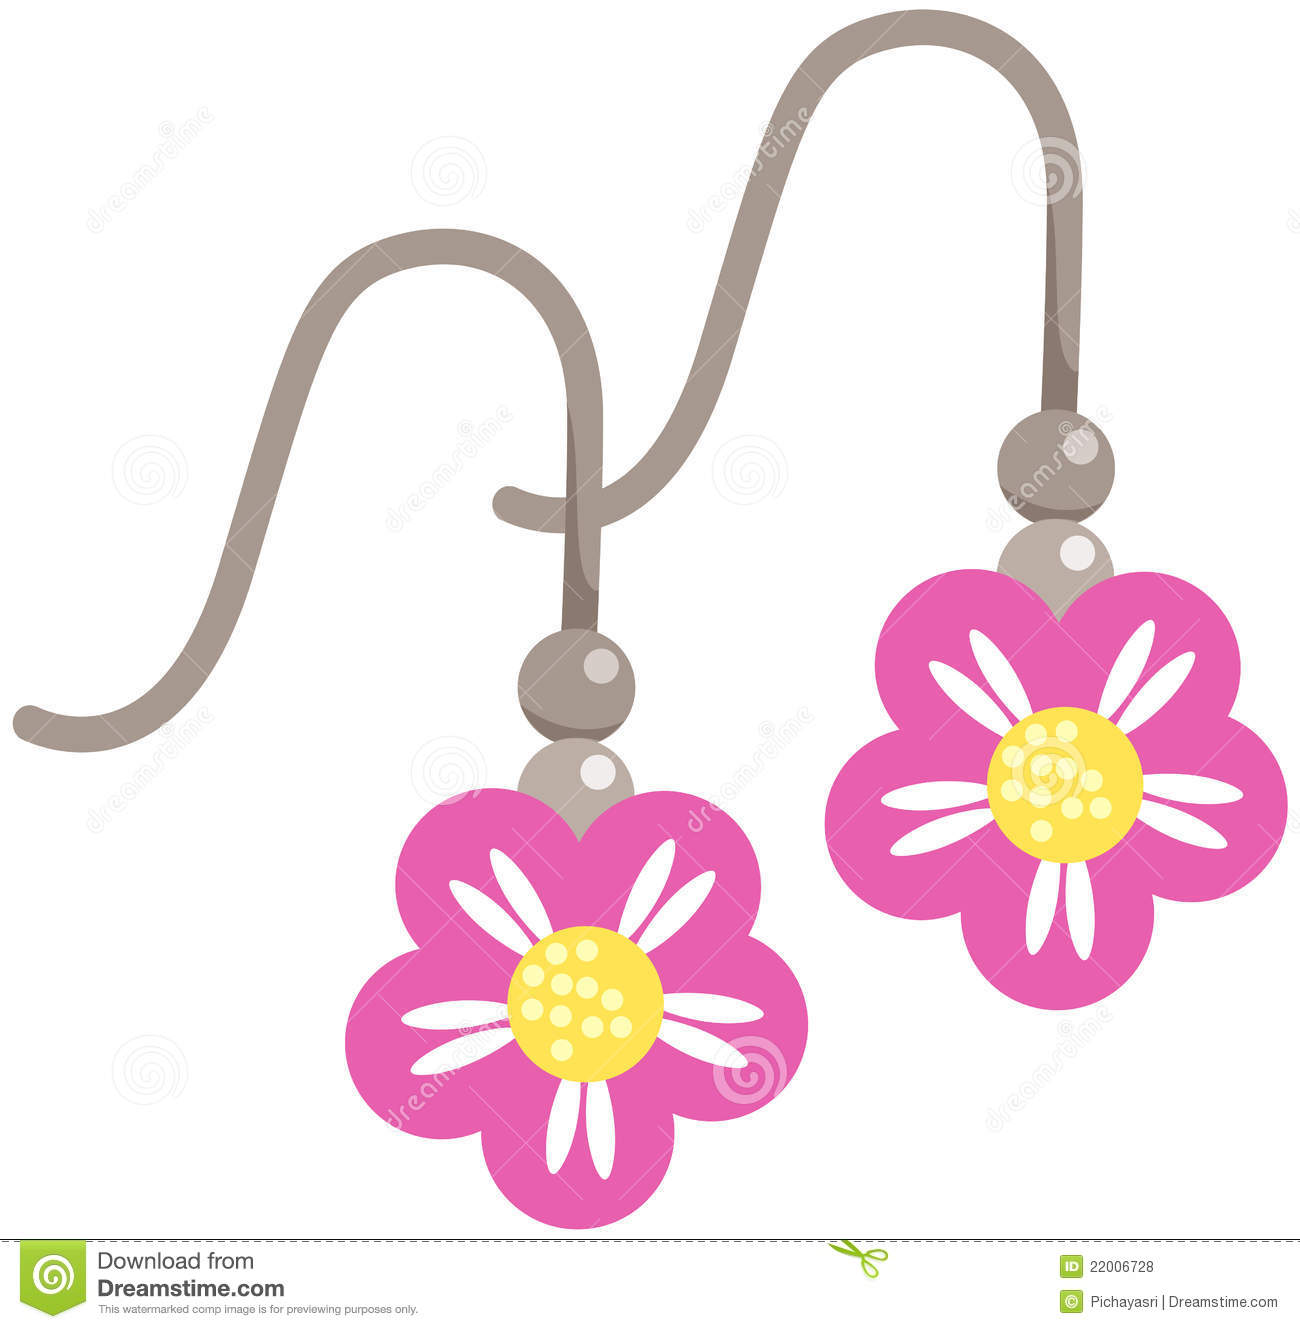 Earrings Clip Art.